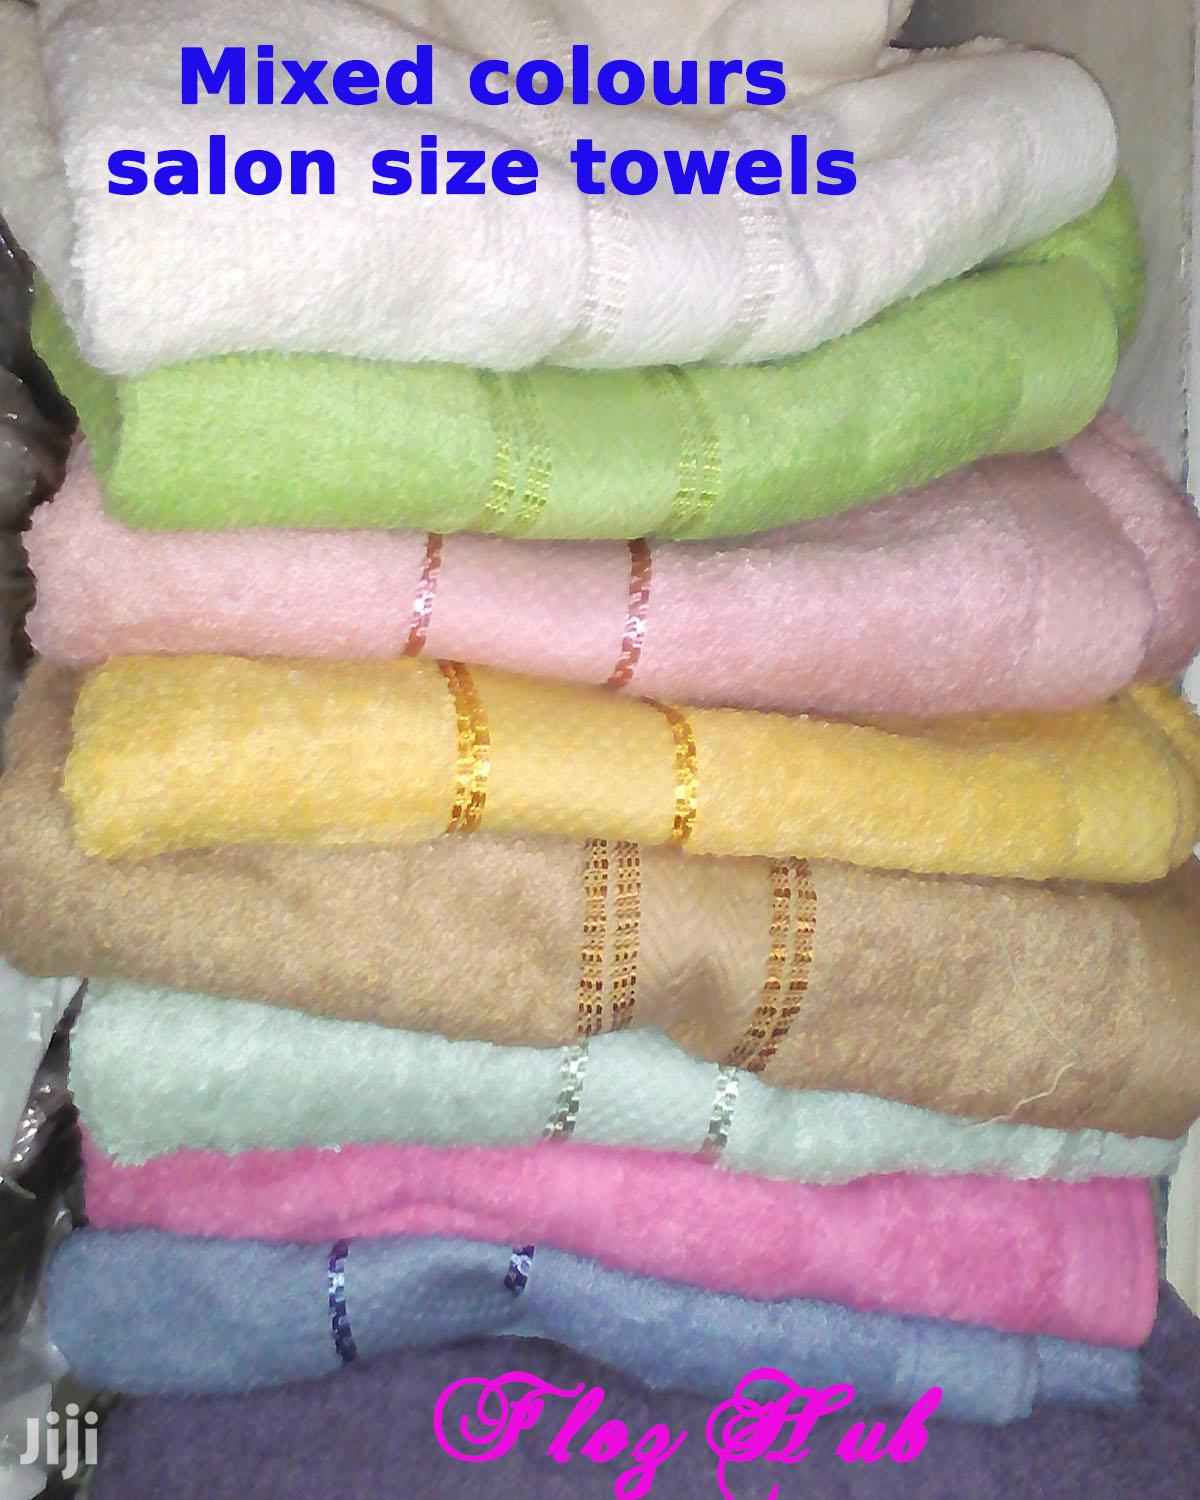 Archive: Mixed Colours Salon Size Towels at 200 250 Each